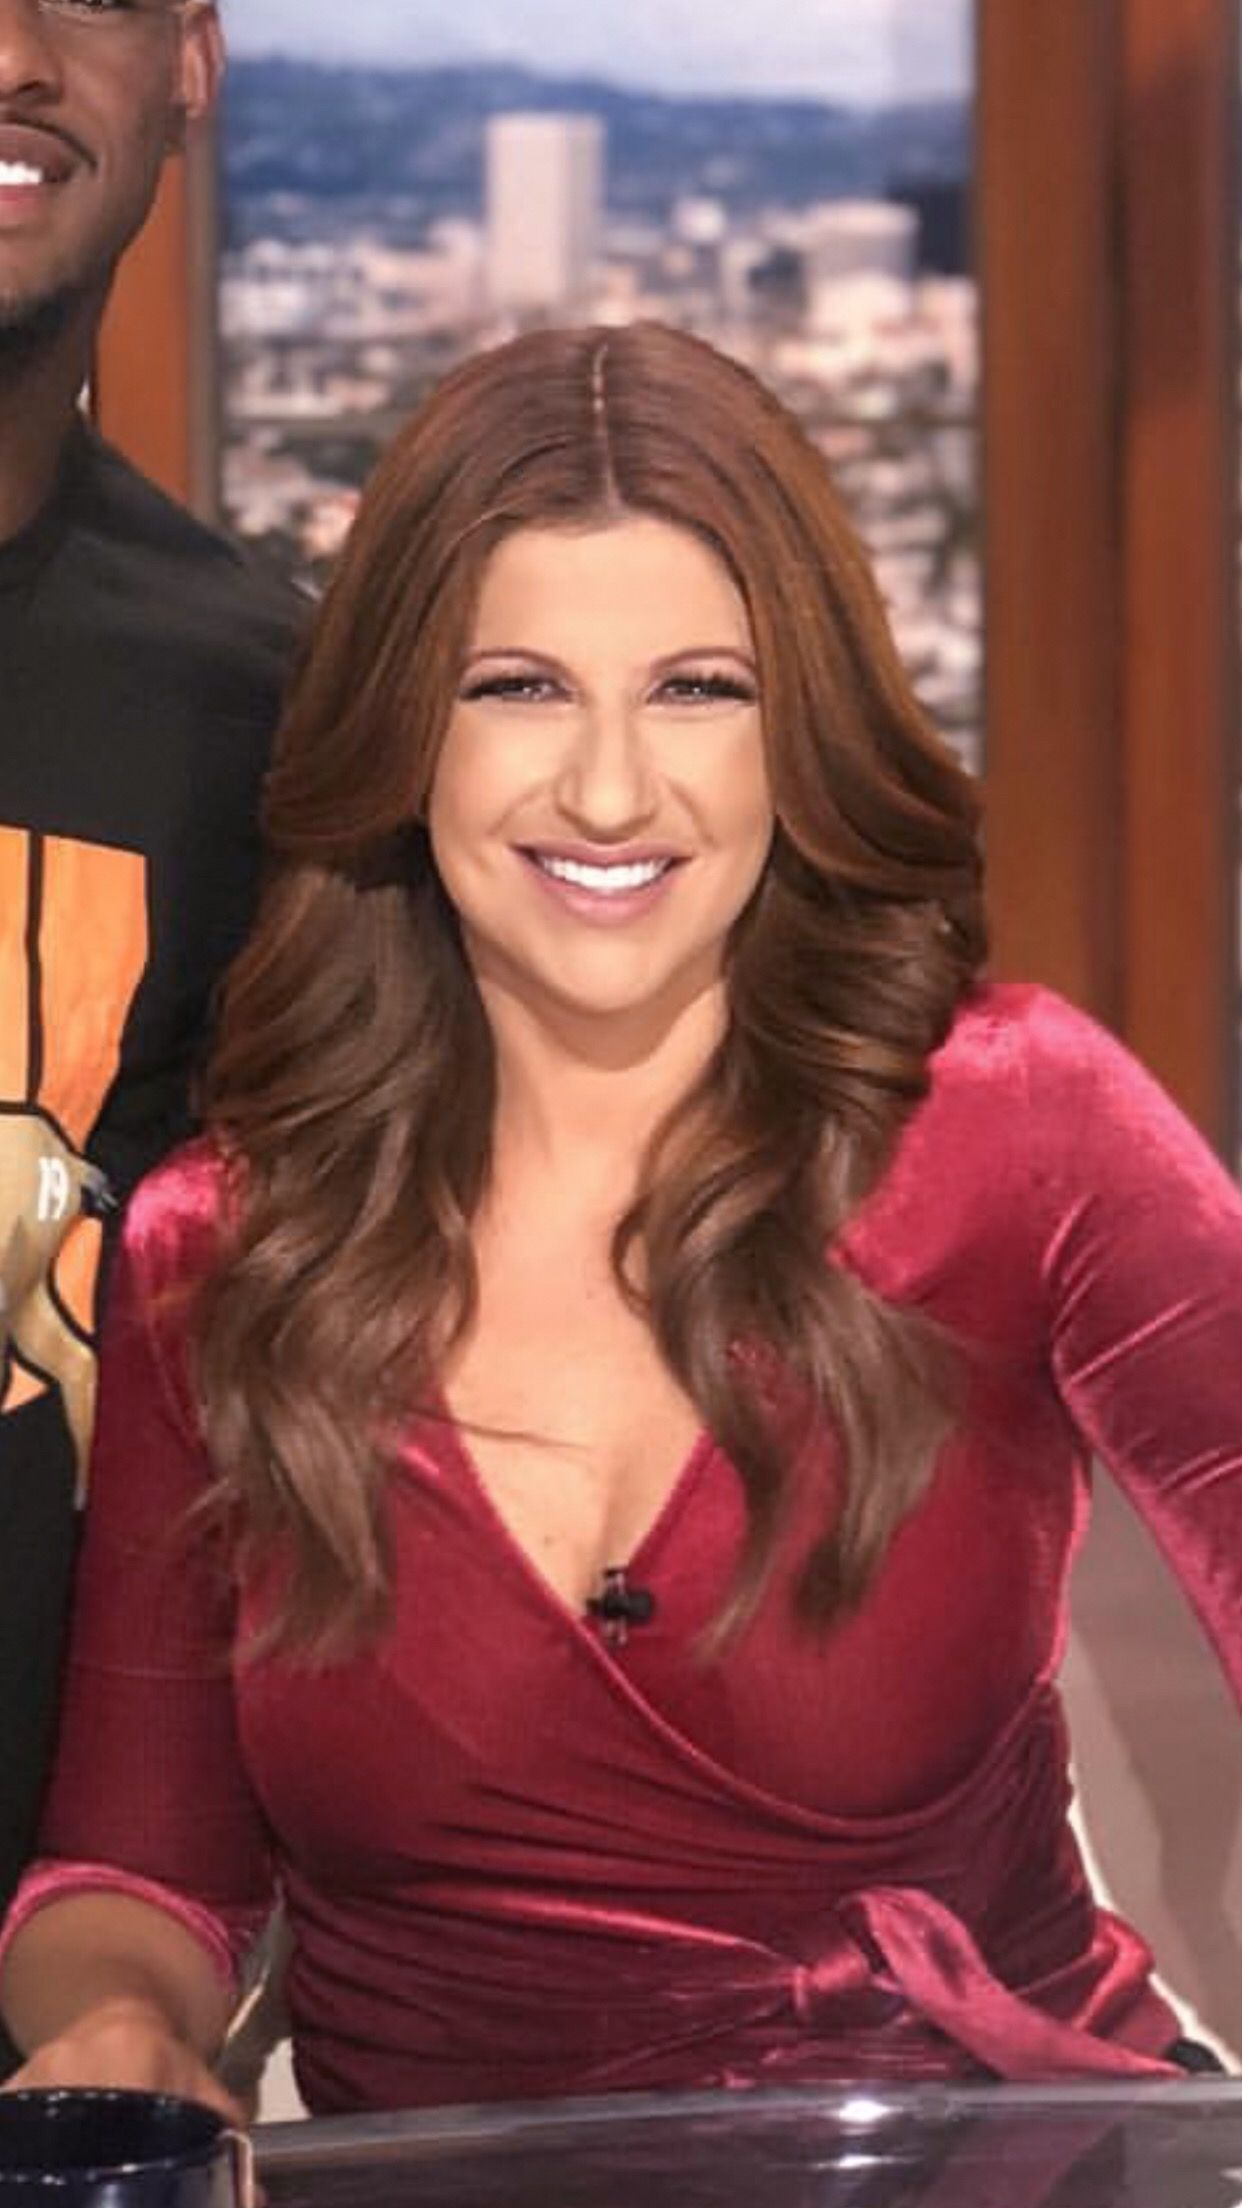 Forum on this topic: Mary Frann, rachel-nichols-born-january-8-1980-age/